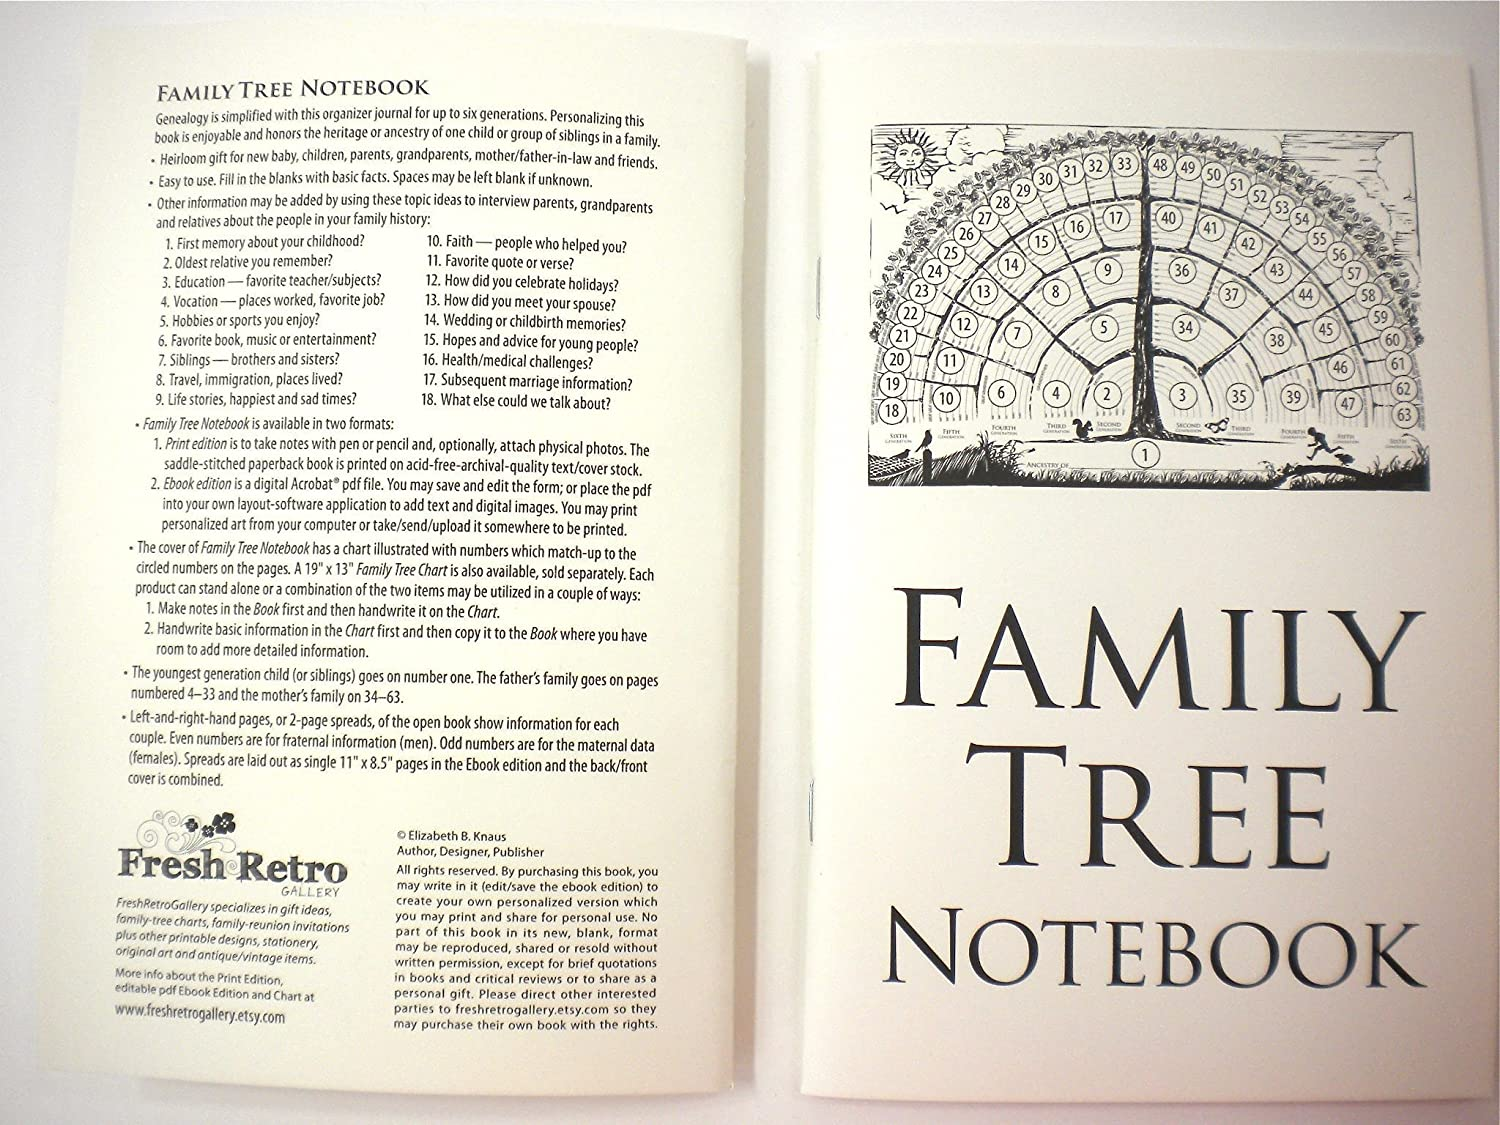 amazon com family tree notebook 2 books per order gifts for baby